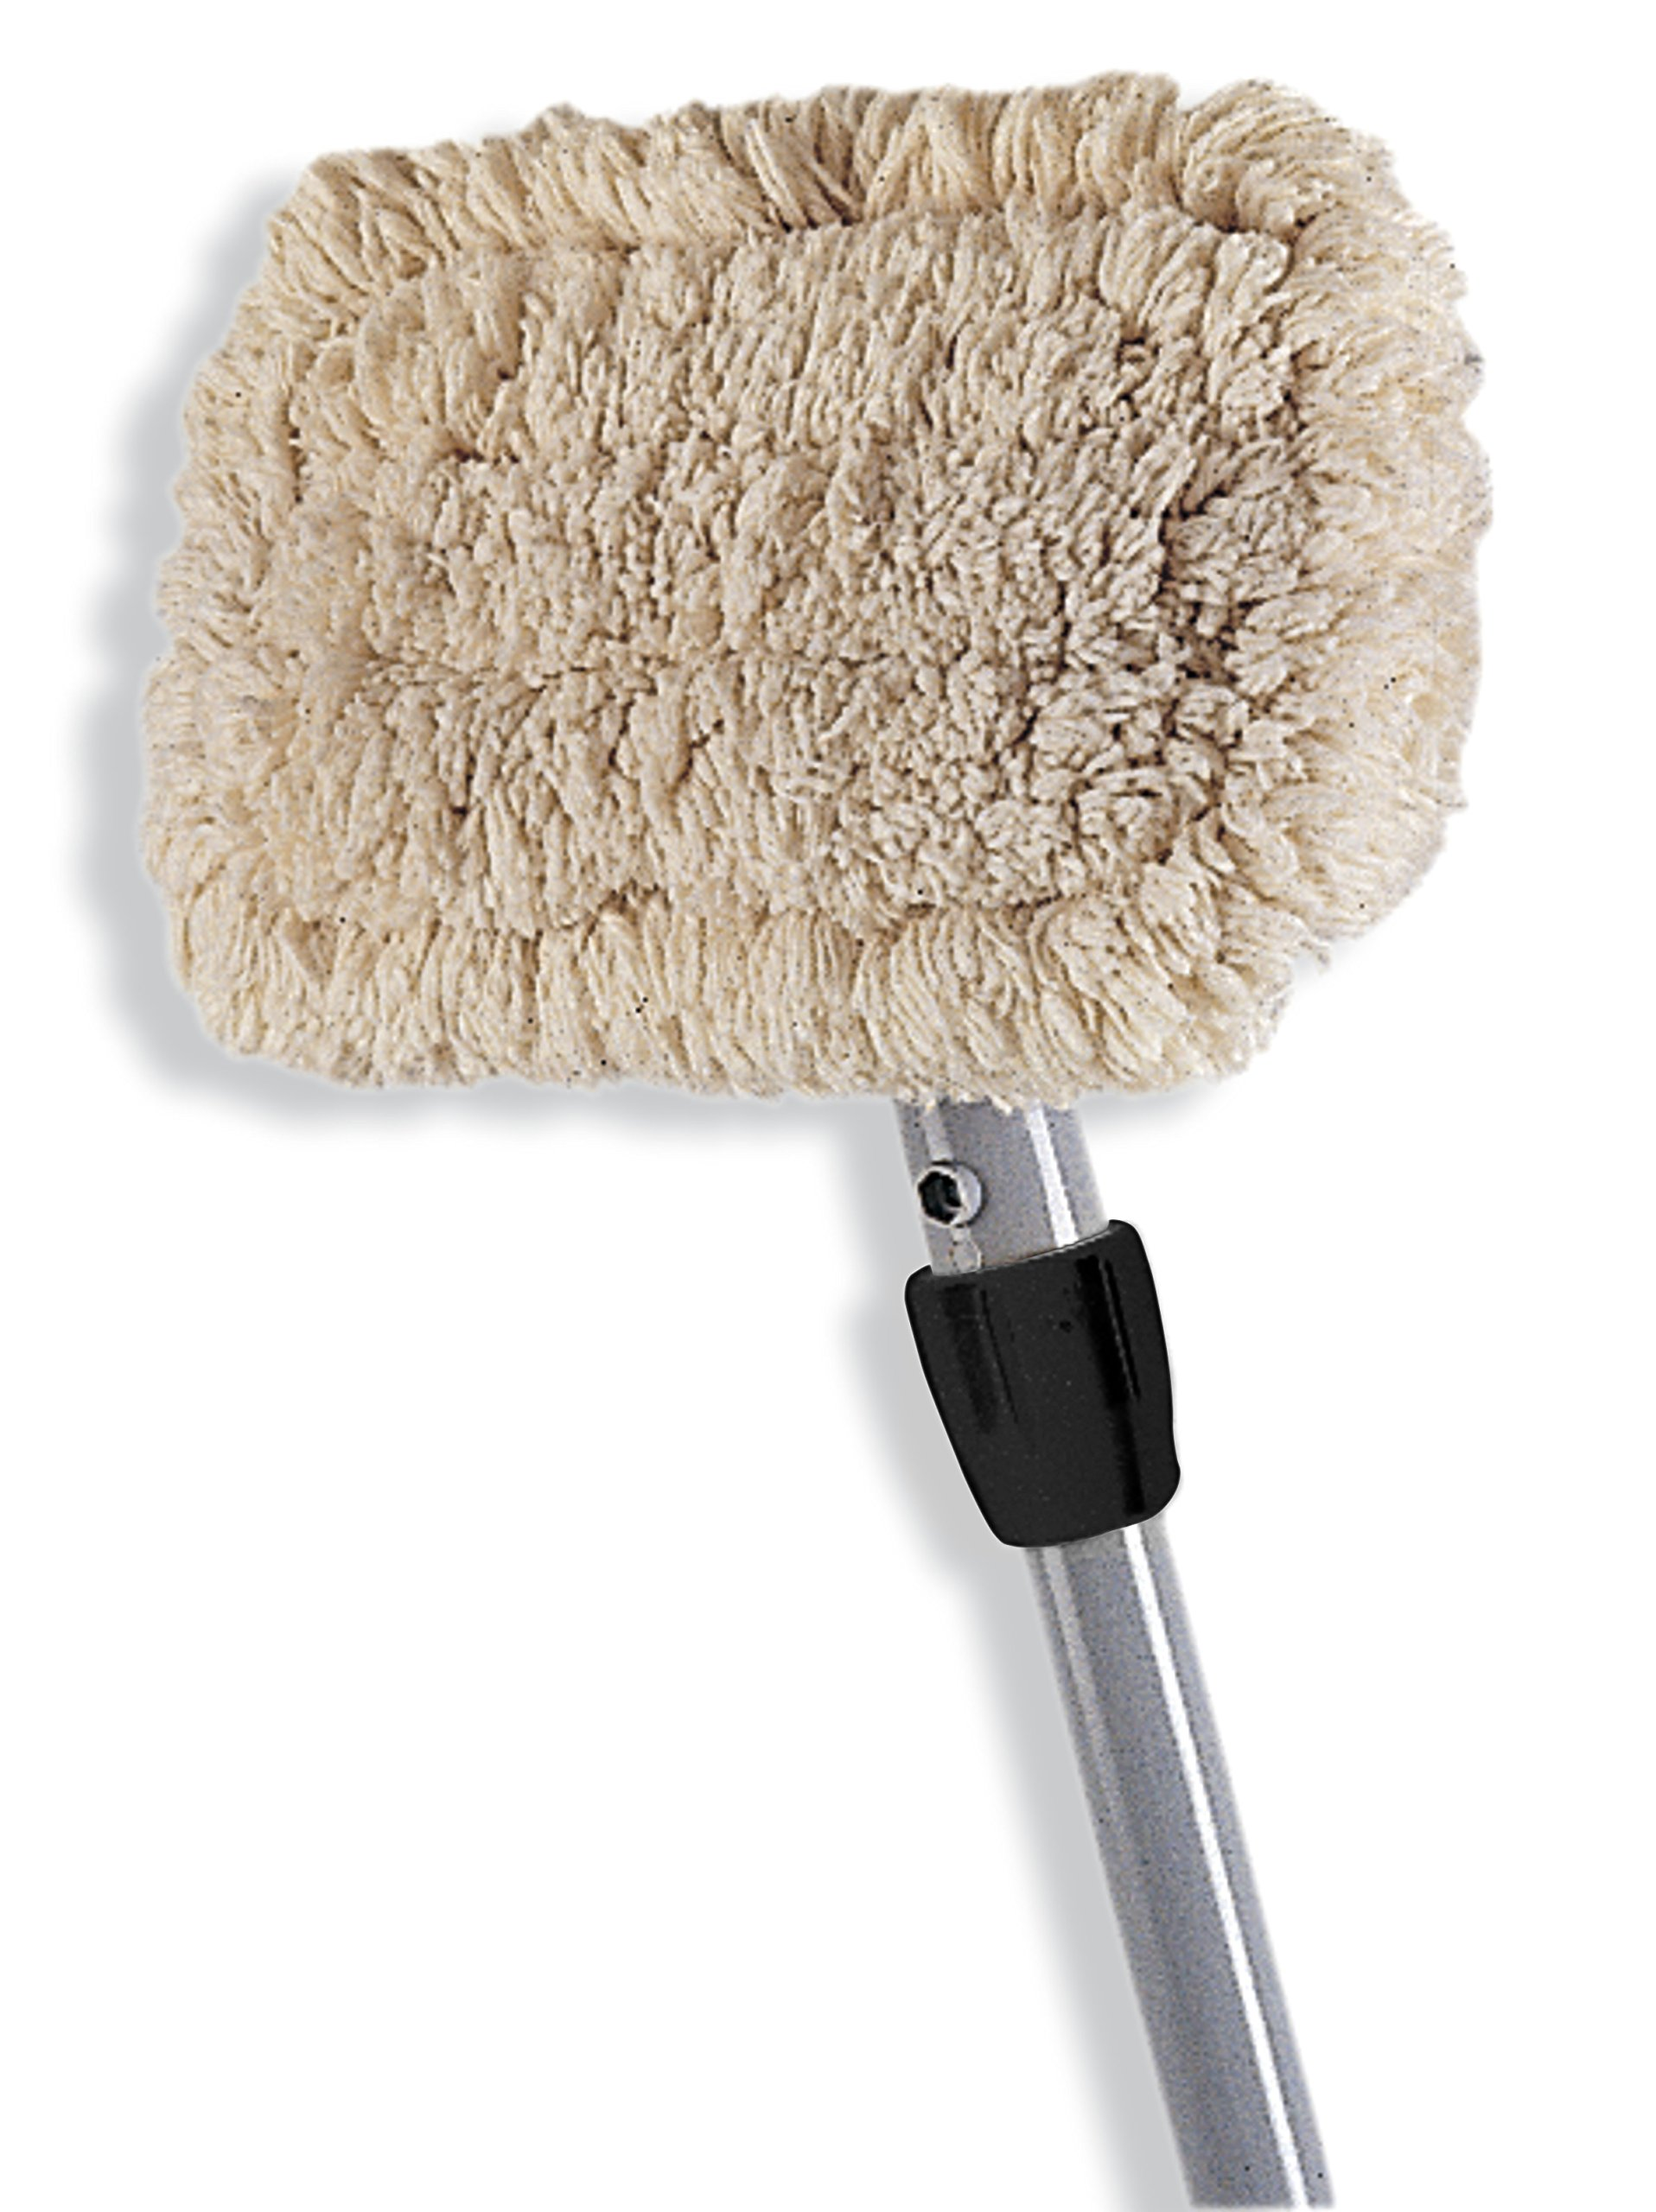 Rubbermaid Commercial 4-Piece Wall Washing Dusting Tools Kit, Gray (FGS22600GY00)